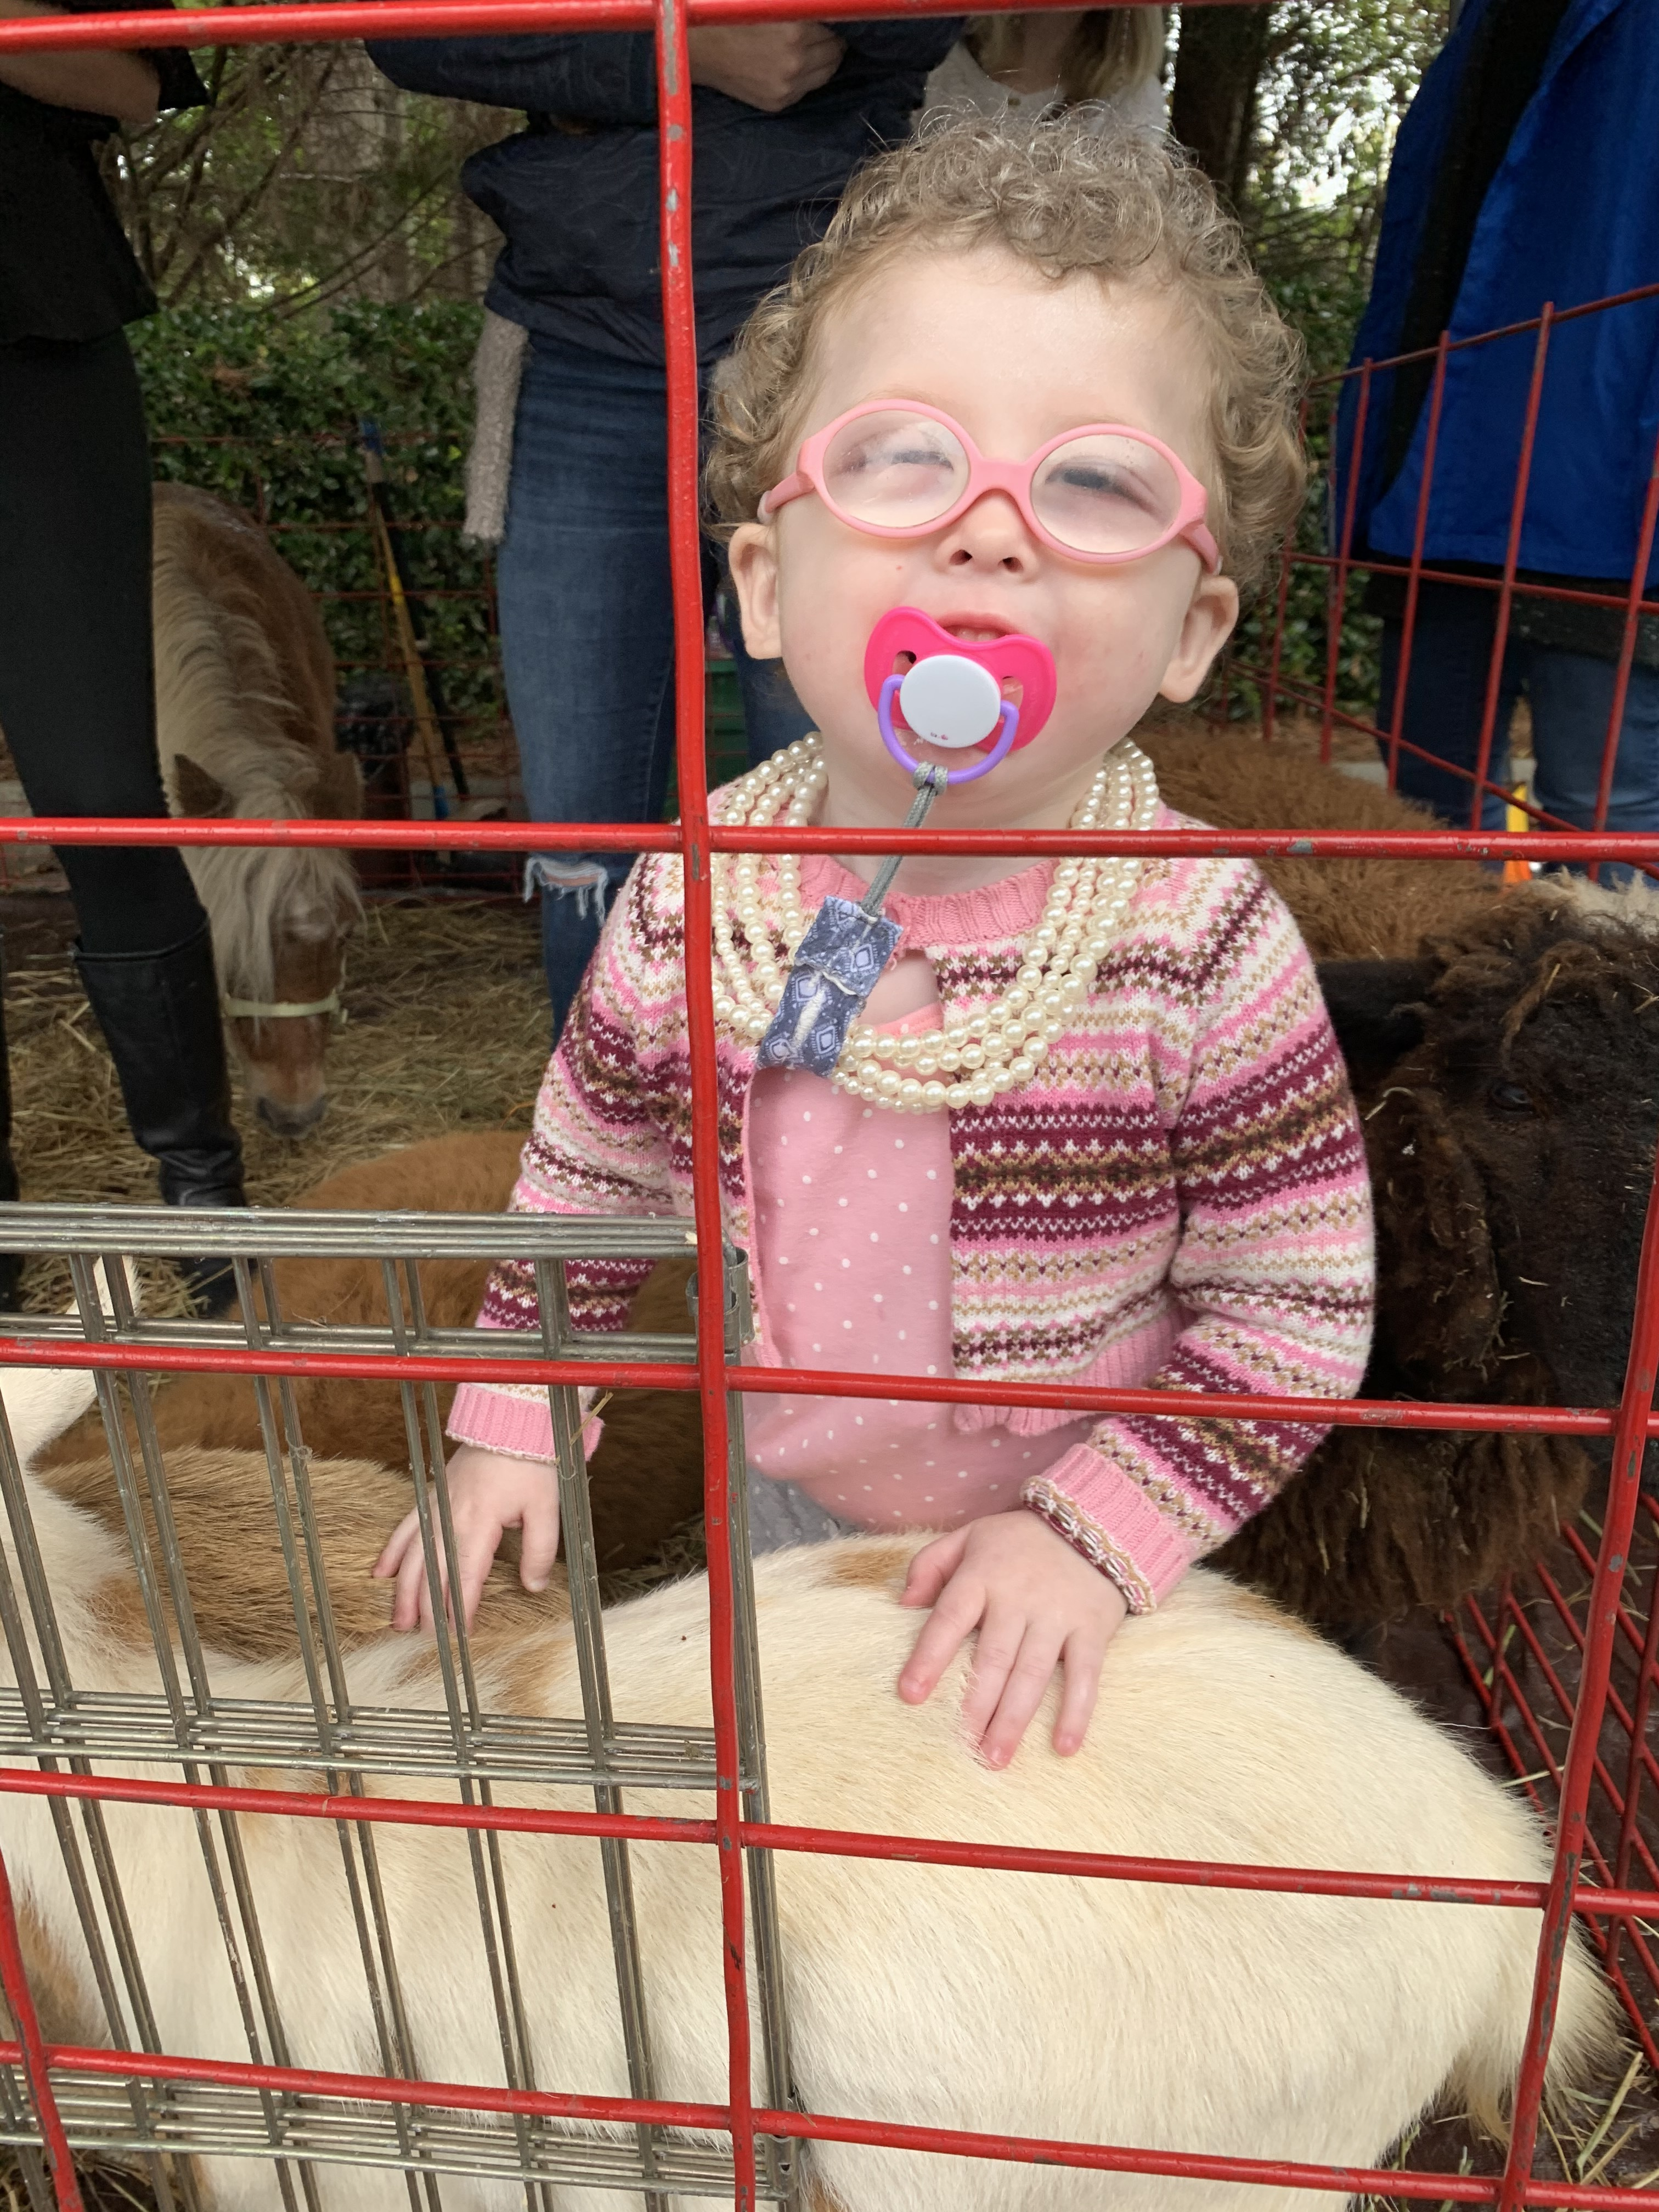 Phoebe looks fetching in a pink sweater accessorized by matching glasses and pacifier.  A string or pearls complete her outfit.  Phoebe is smiling and petting a goat in the petting zoo.